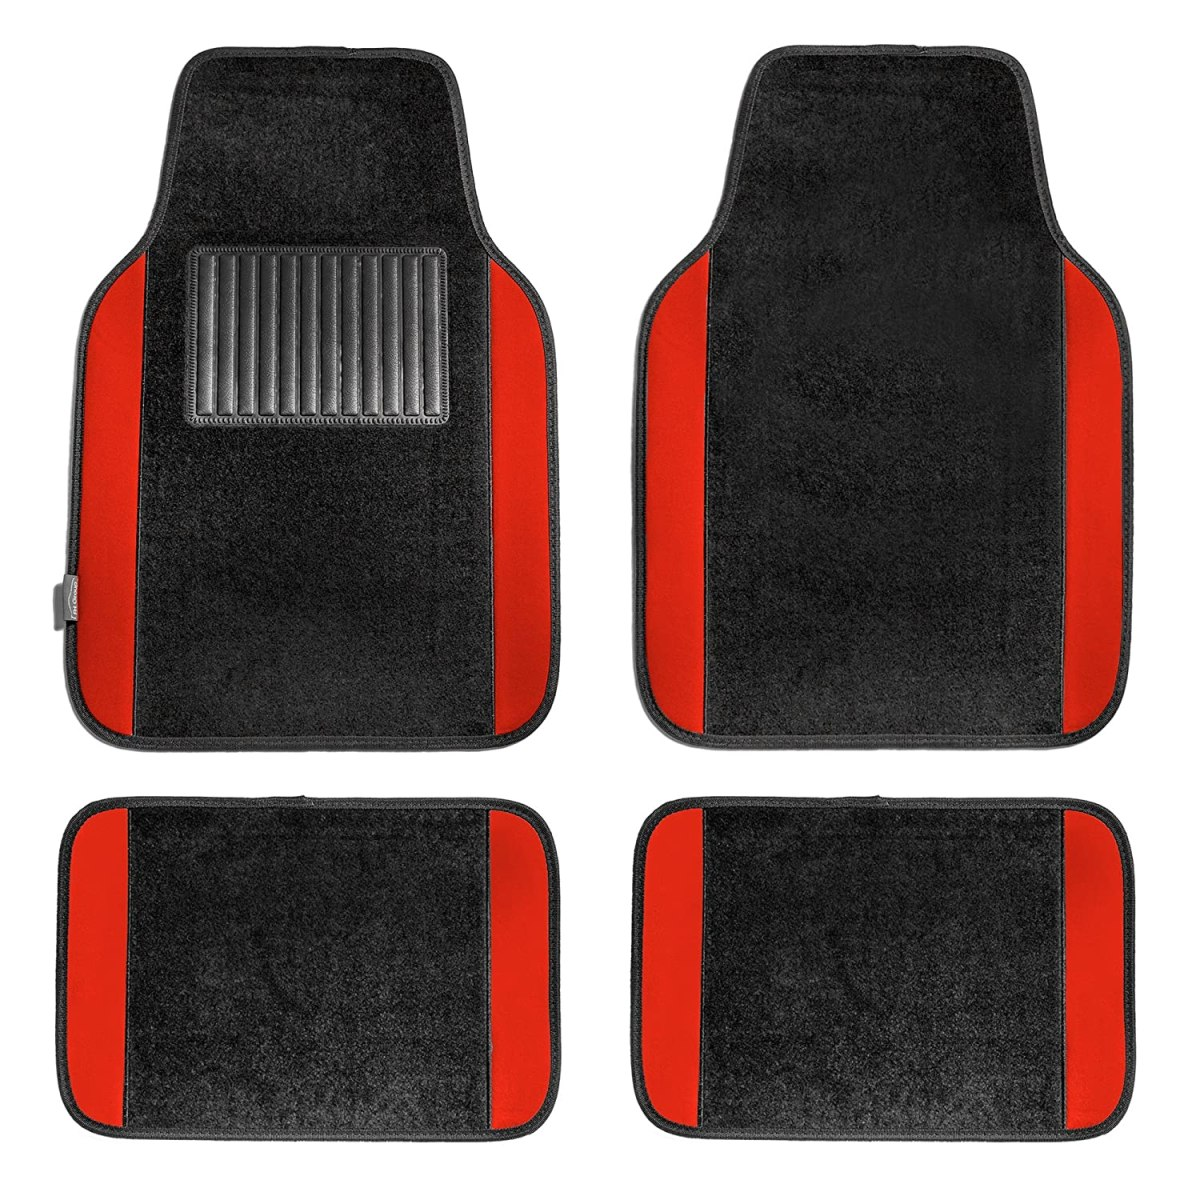 Best Floor Mats Reviews FH Group F14407RED Premium Full Set Carpet Floor Mat